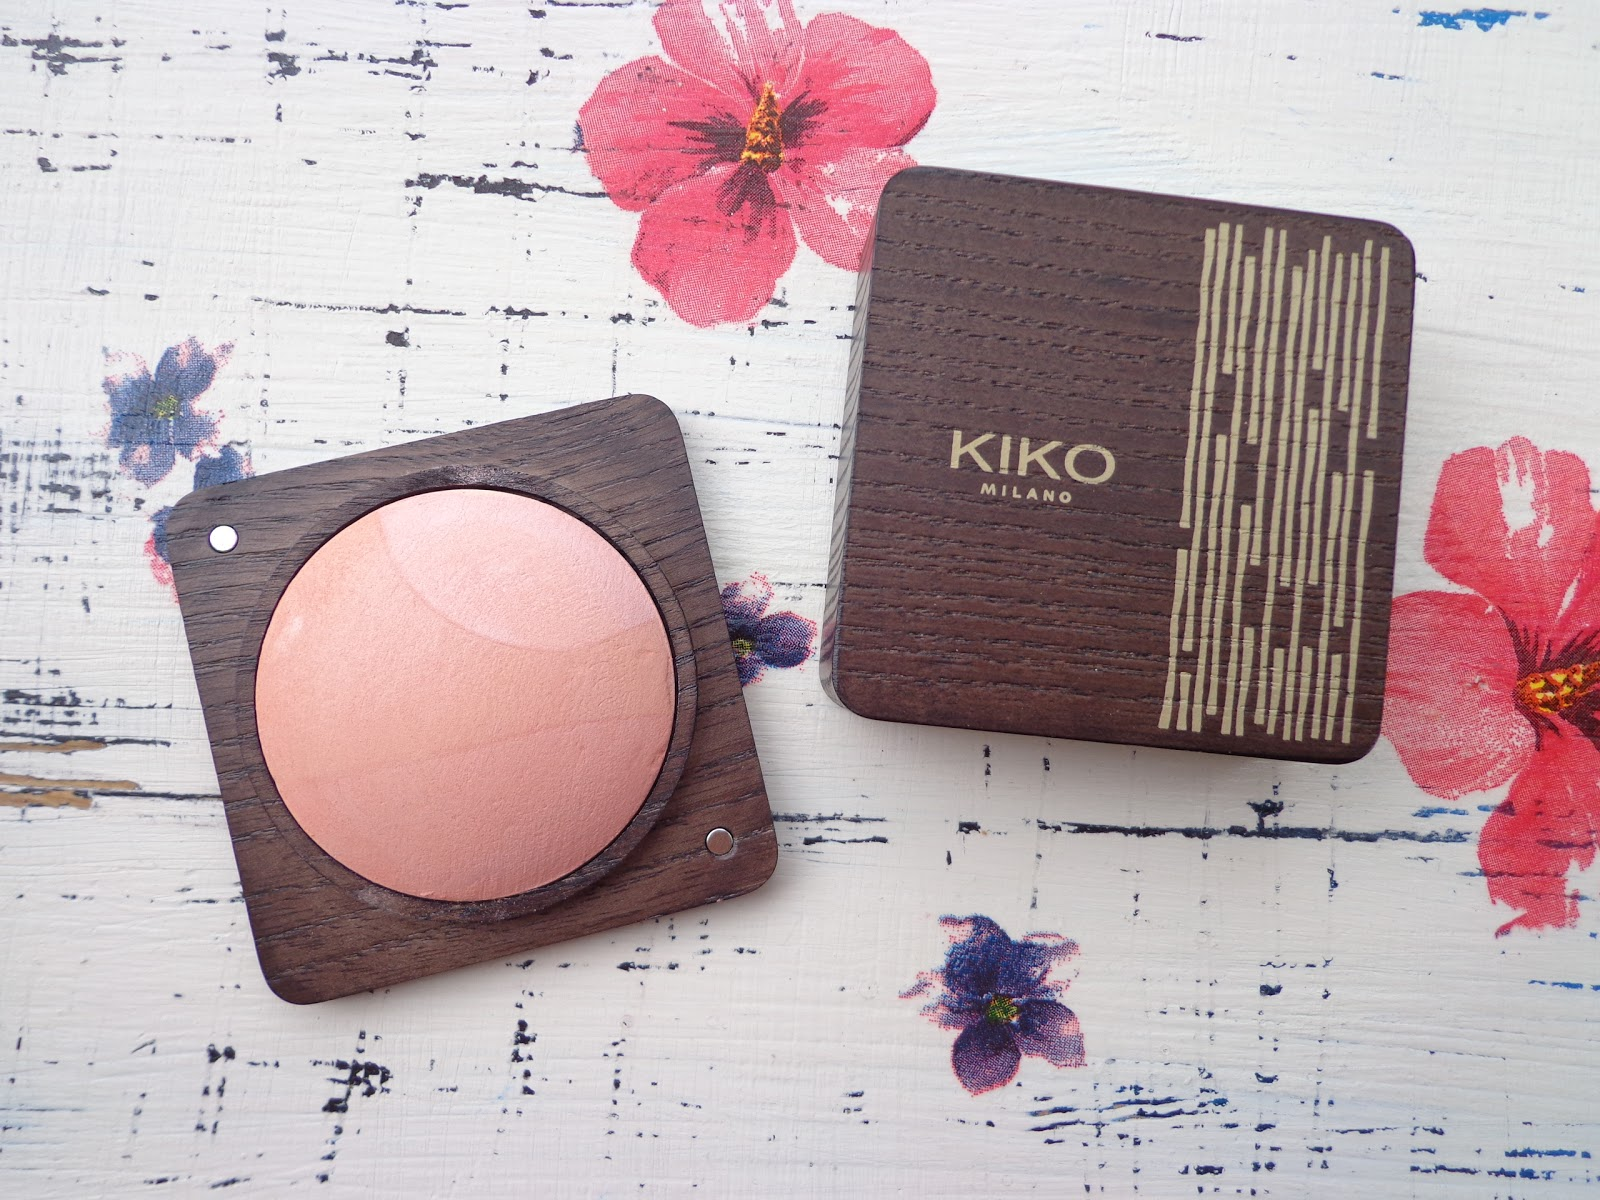 Kiko Tribal Soul Baked Blush